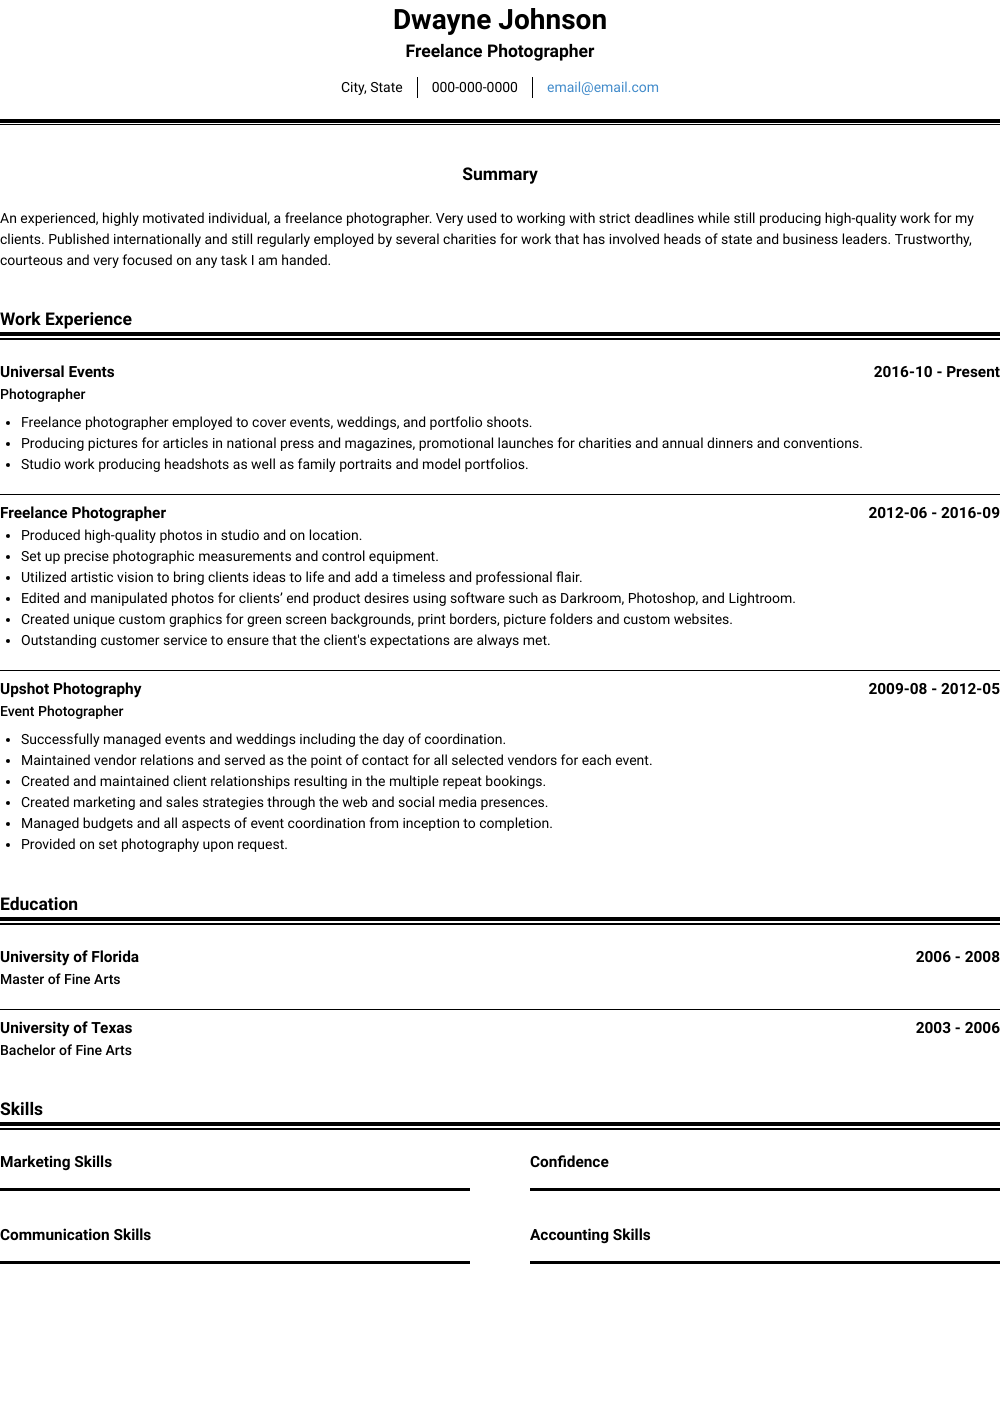 freelance photographer resume template